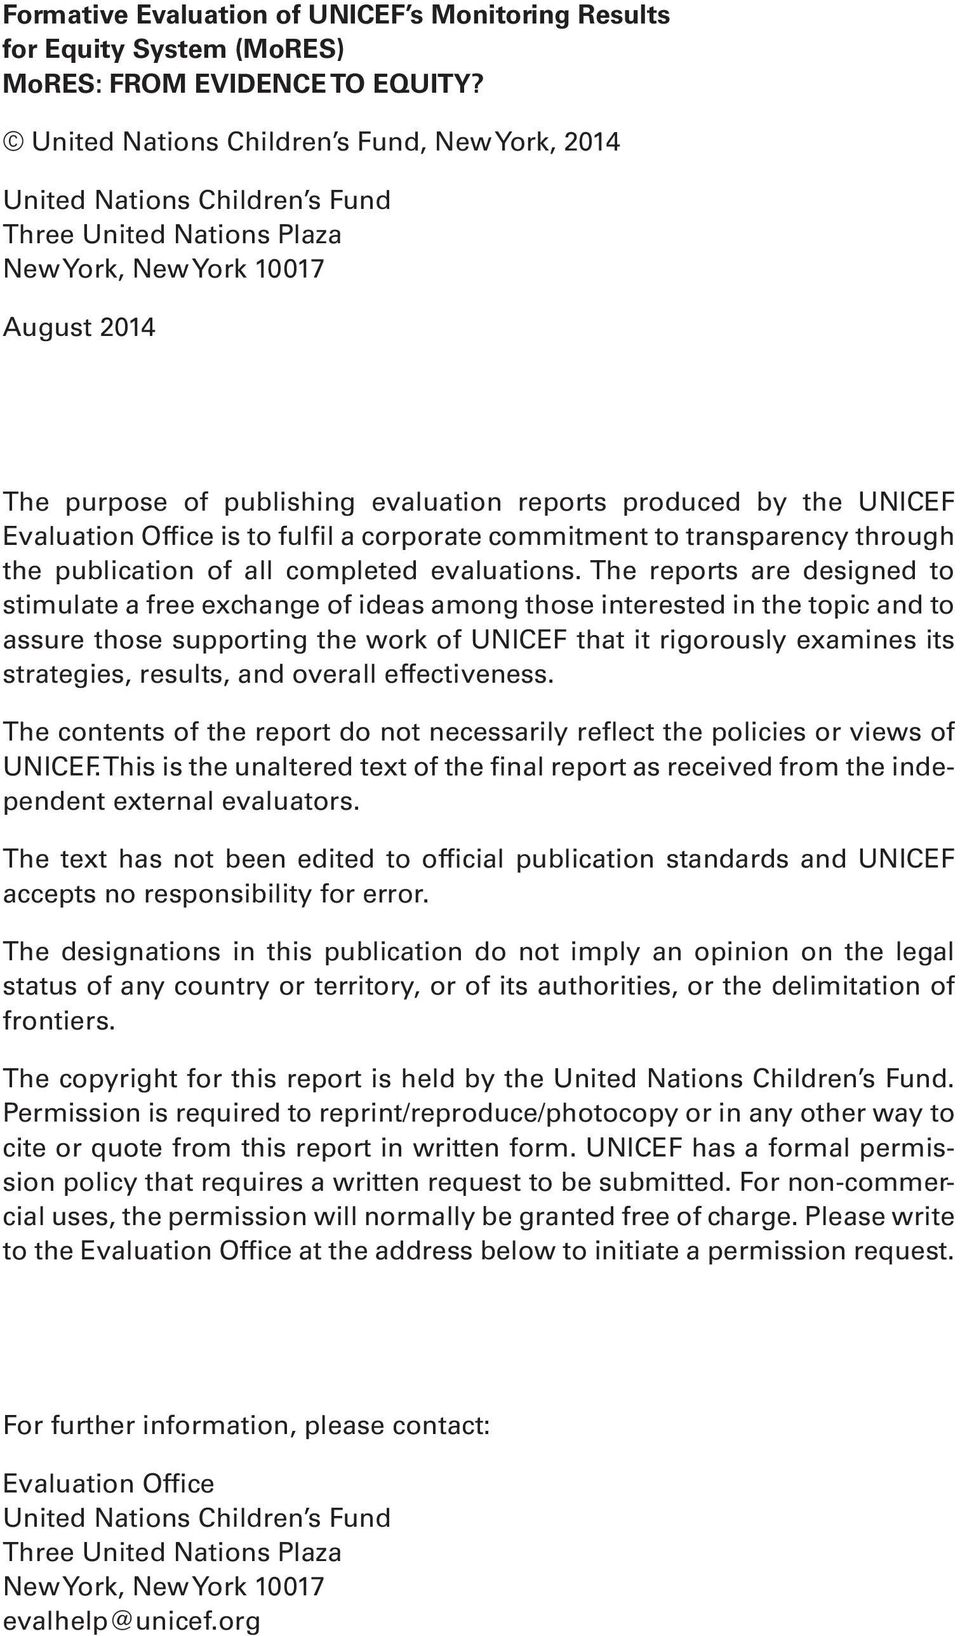 the UNICEF Evaluation Office is to fulfil a corporate commitment to transparency through the publication of all completed evaluations.